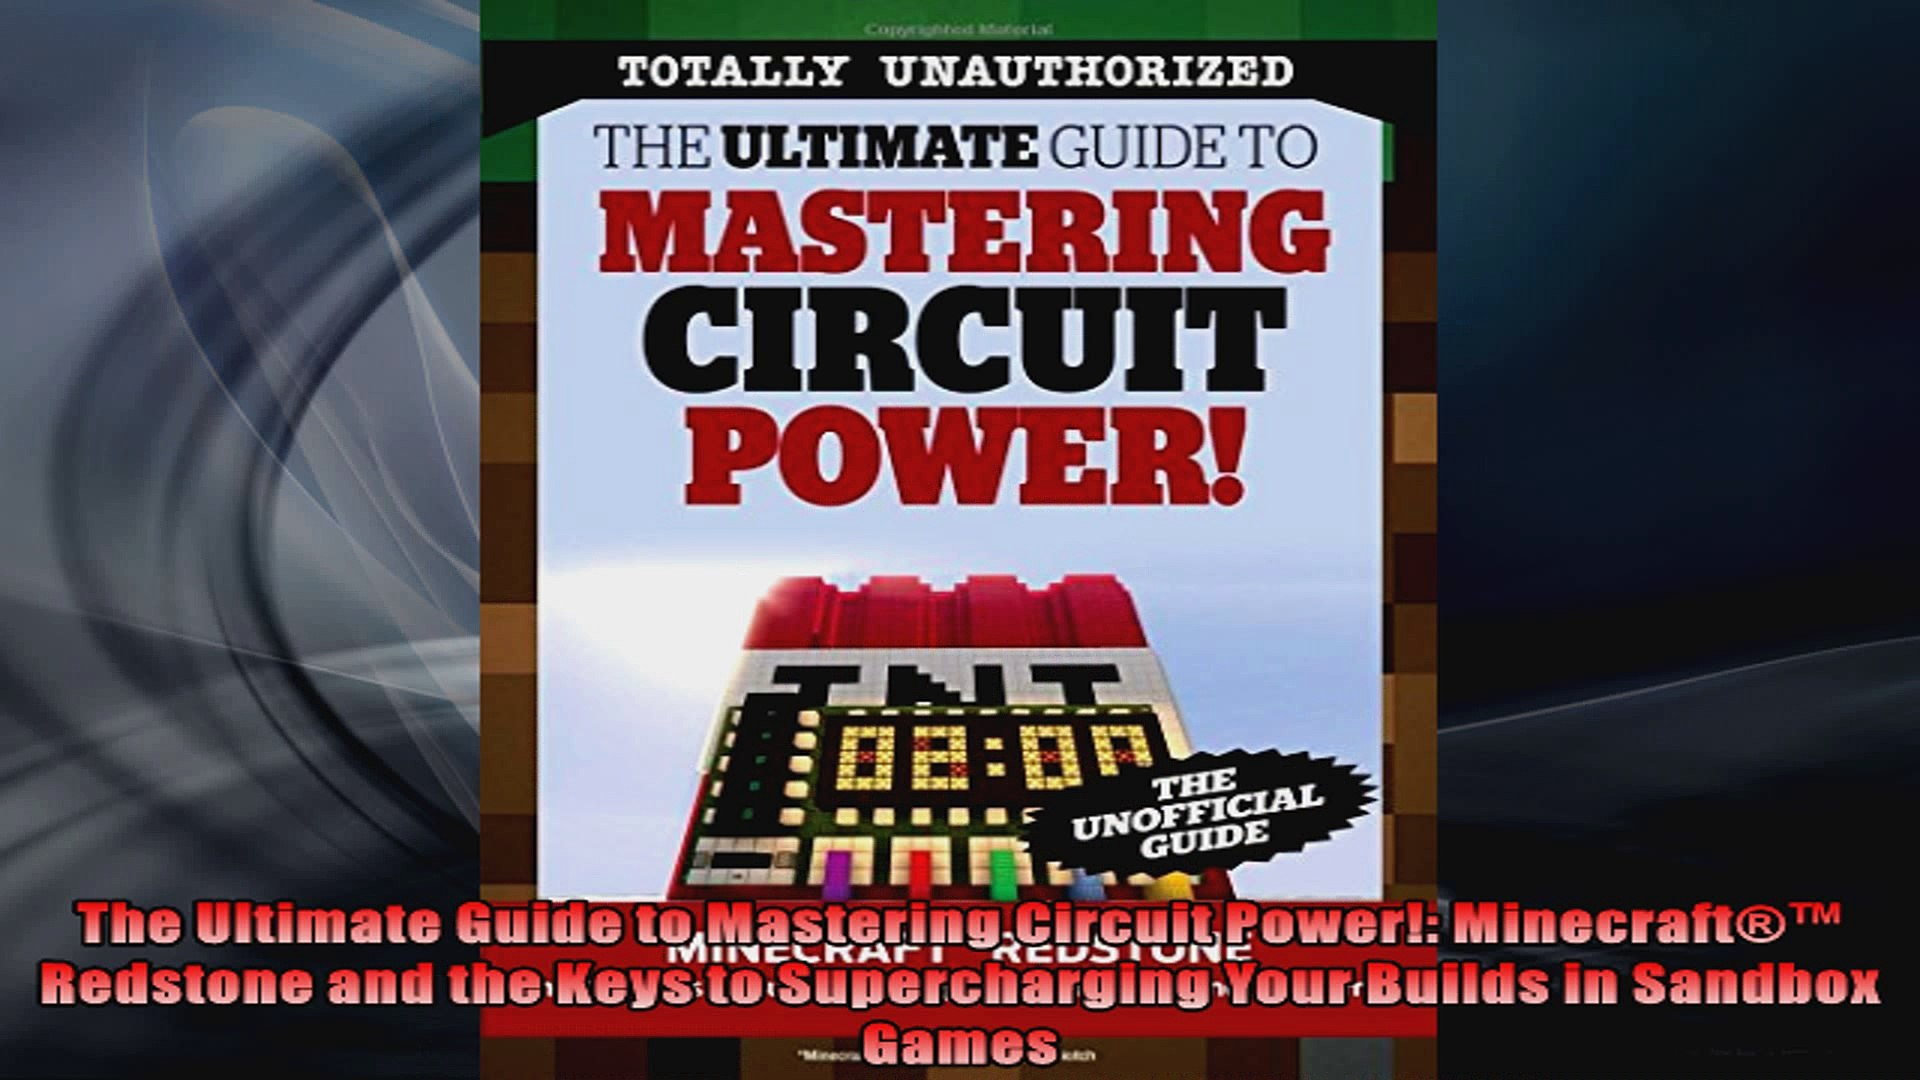 The Ultimate Guide To Mastering Circuit Power Minecraft Redstone And The Keys To